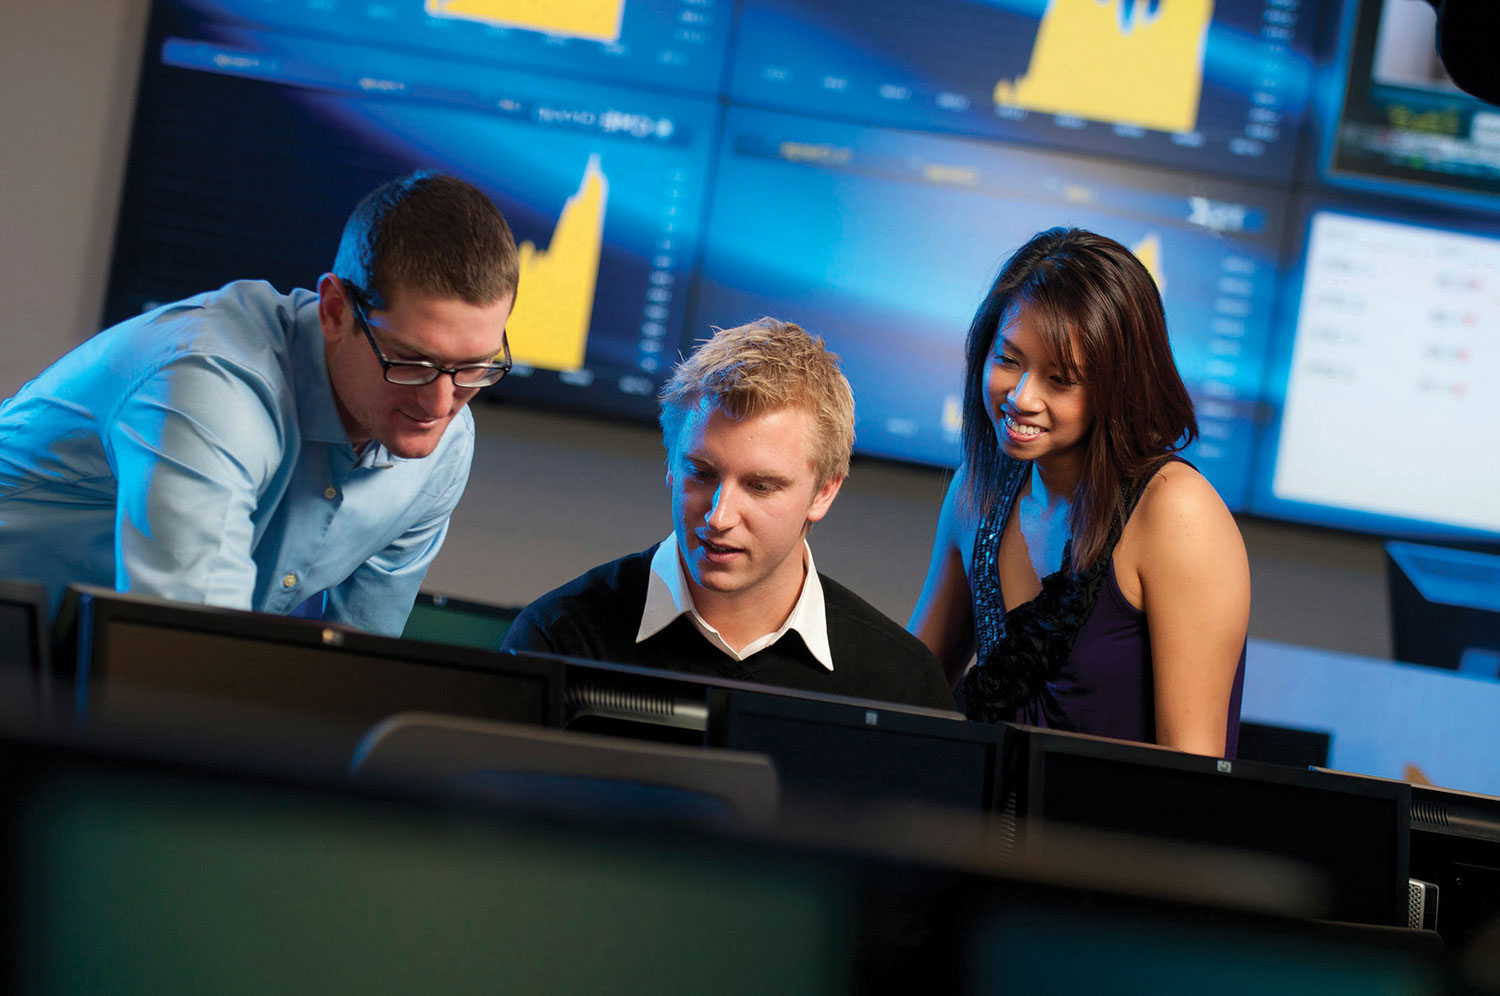 Students in the Centre for Financial Market Research and Training